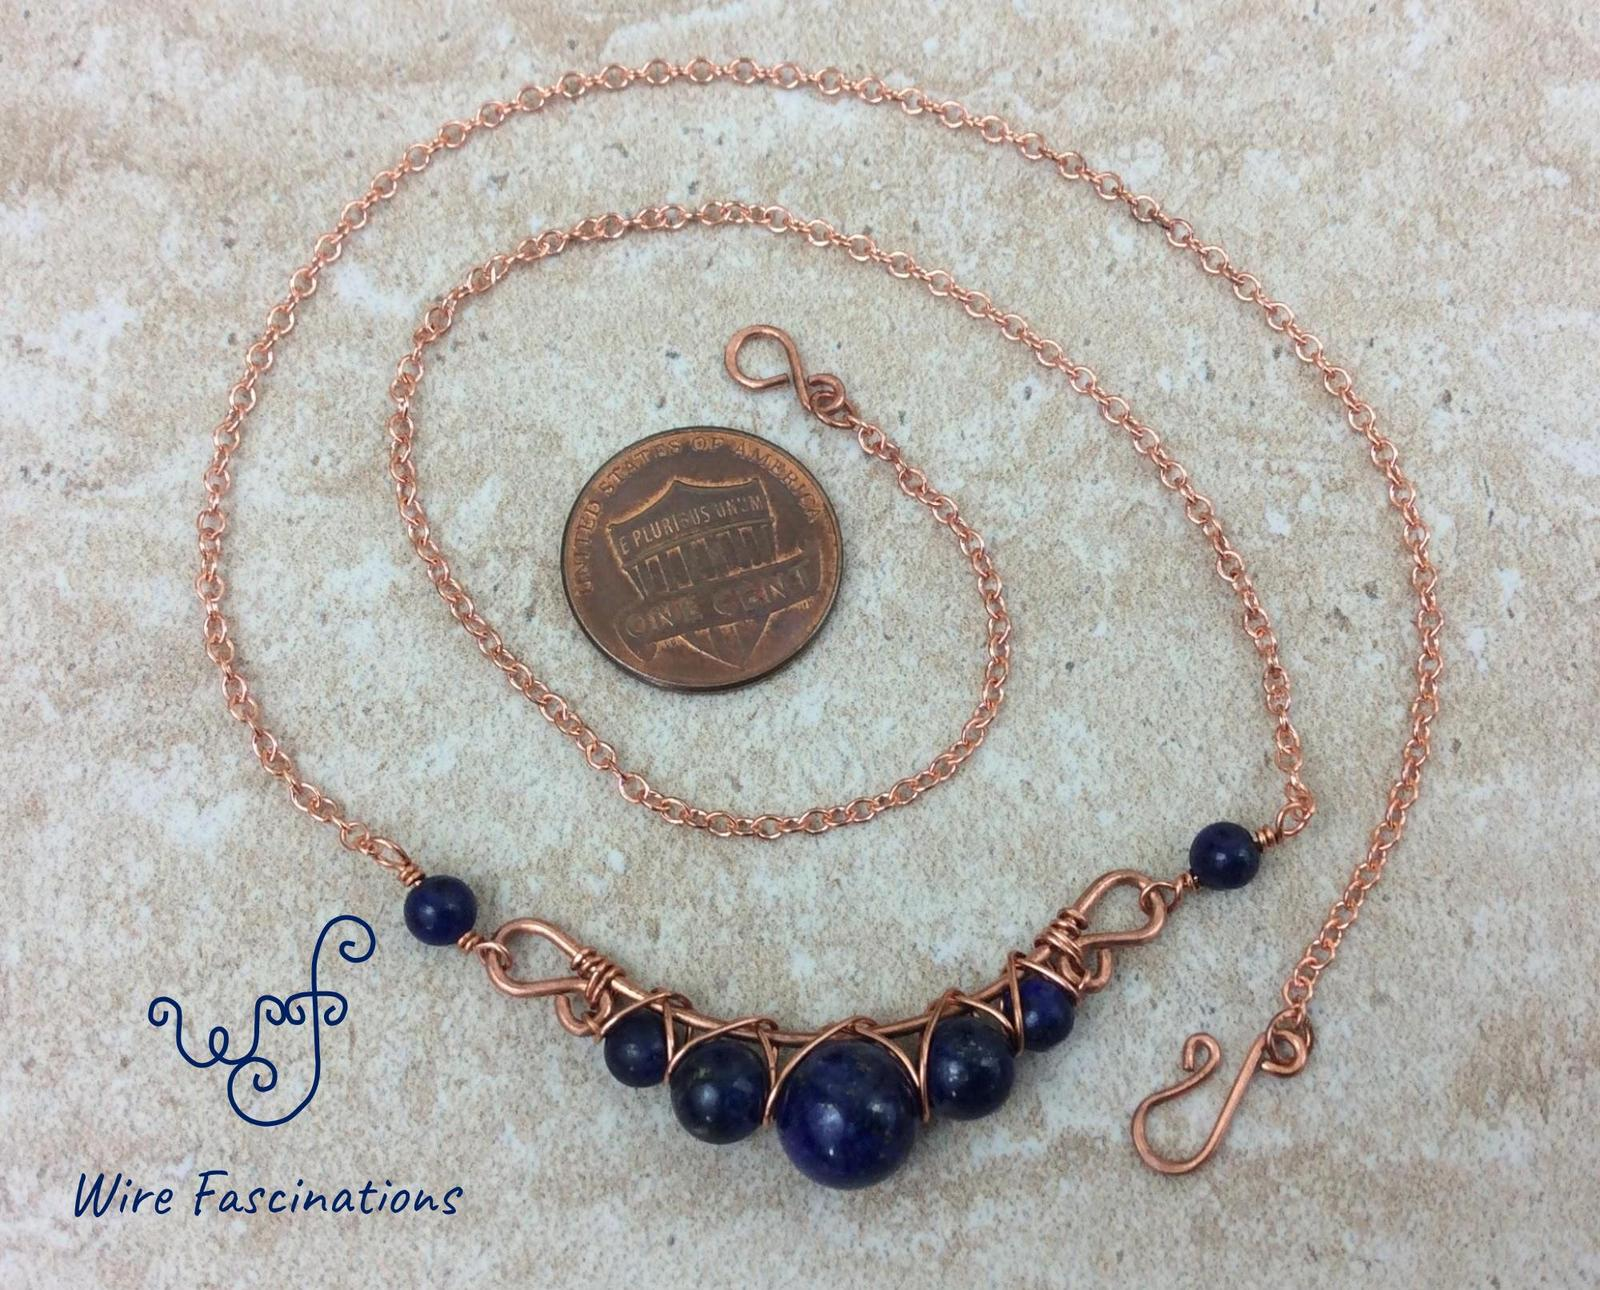 Handmade lapis lazuli necklace: criss cross copper wire wrapped image 8